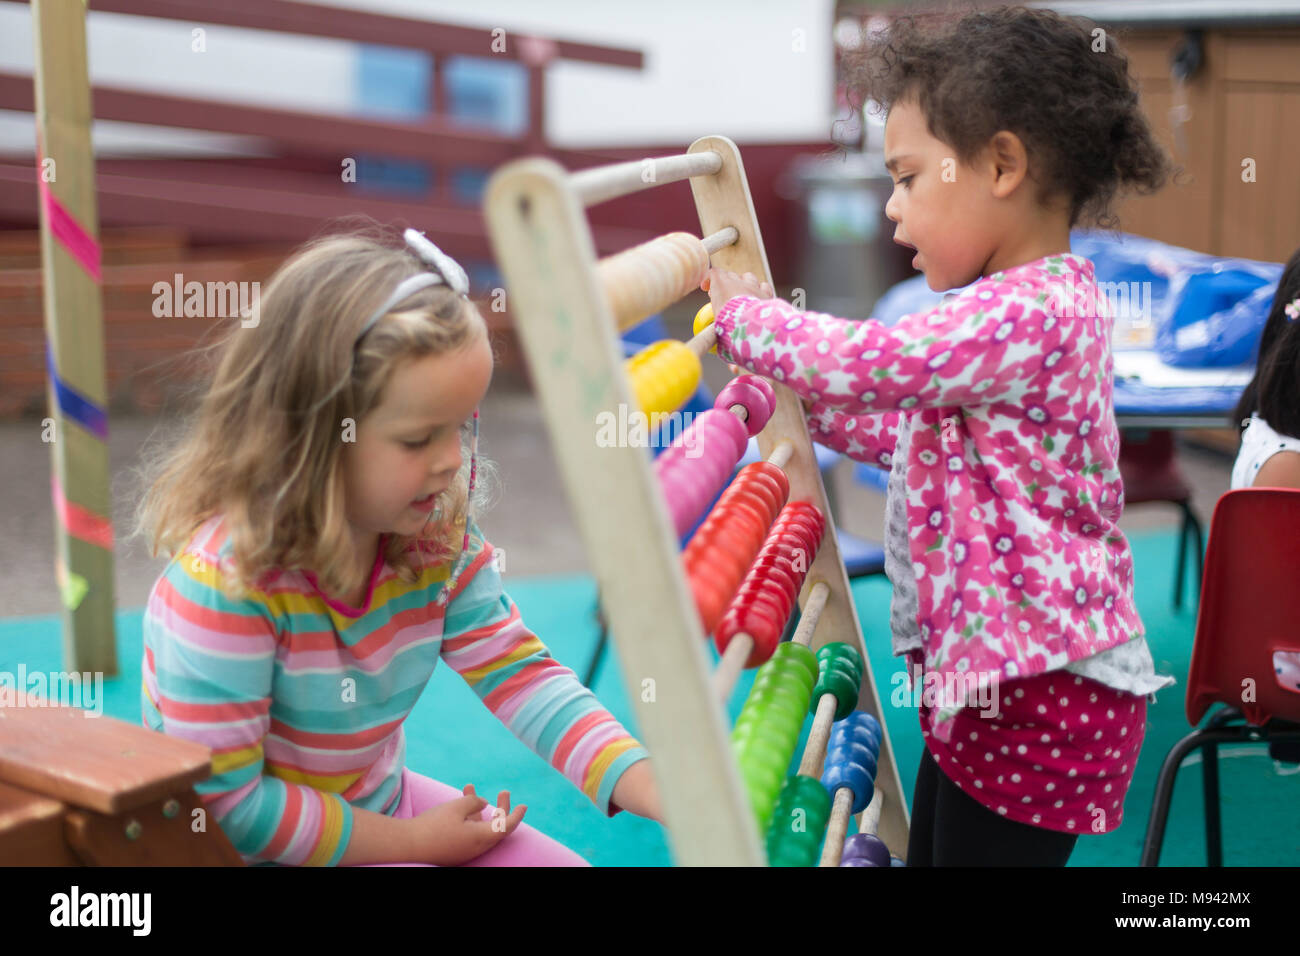 Two girls playing with an abacus at a nursery school in Warwickshire, UK Stock Photo